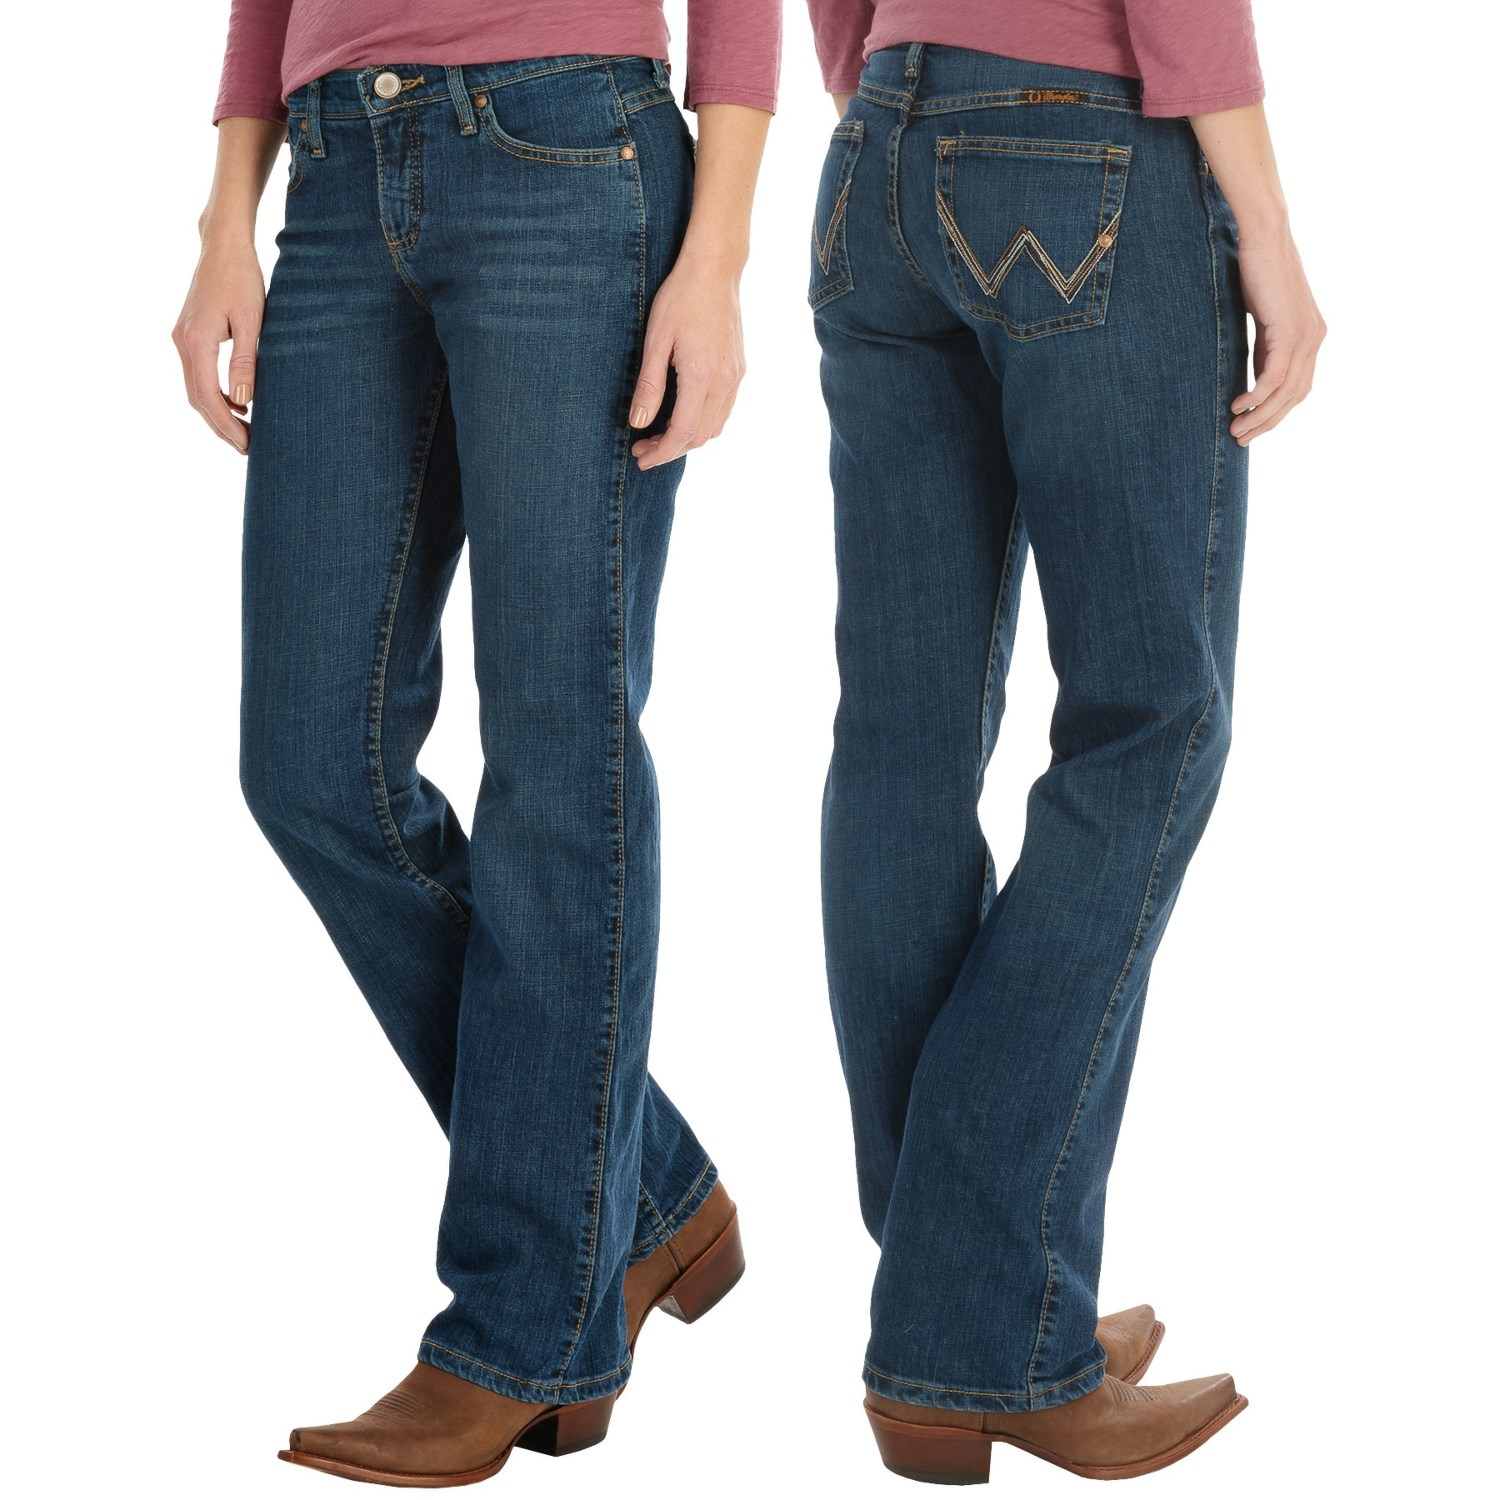 0a98ad80 Wrangler Q-Baby Ultimate Riding Jeans - Sits Below the Waist, Bootcut (For  Women)